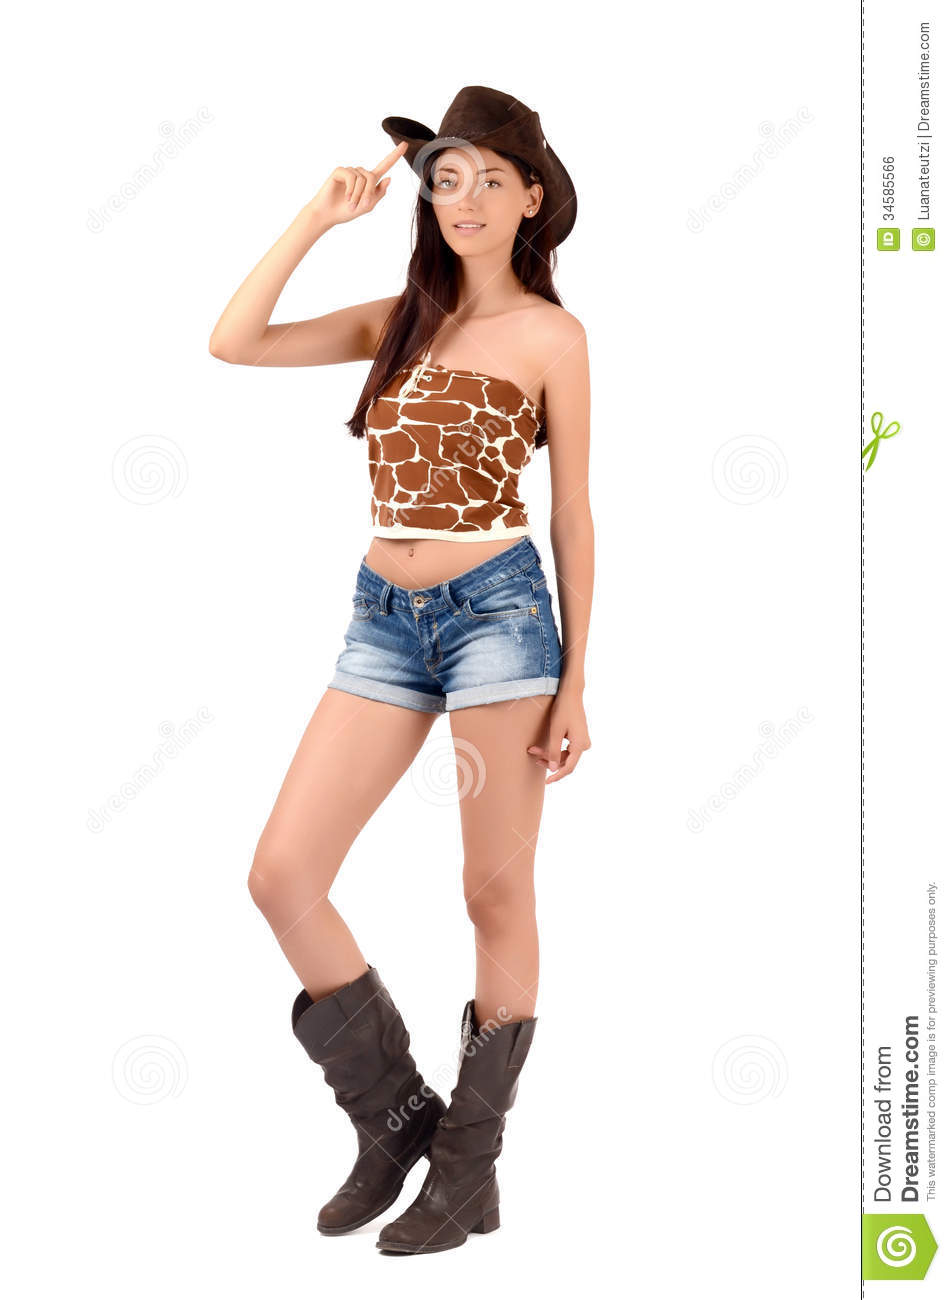 american cowgirl with shorts and boots and a cowboy hat.